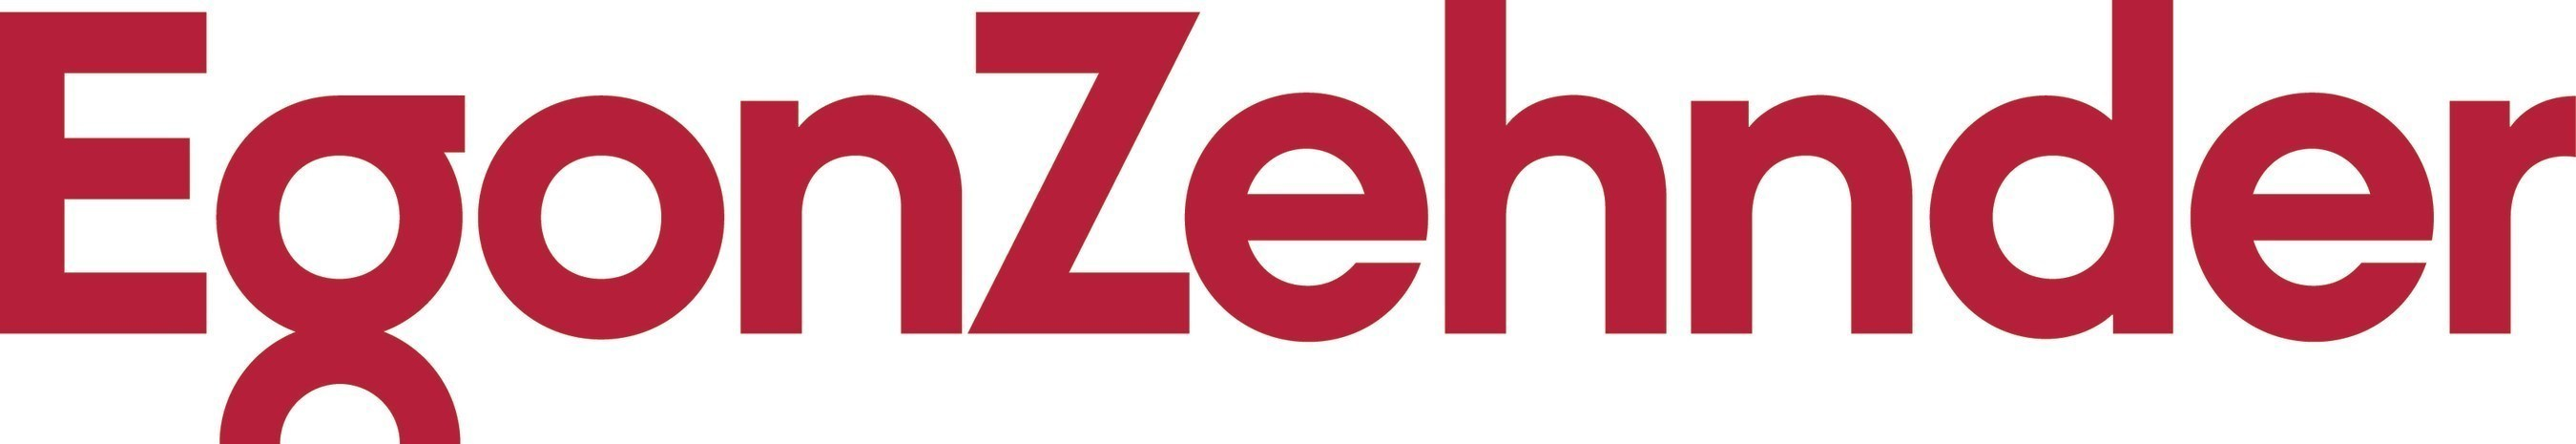 strategic review at egon zehnder international Egon zehnder's wiki: egon zehnder is a global executive search firm egon zehnder is the world's third largest executive search and talent strategy firm[20] the firm offers services and expertise in the fields of executive search, board consulting and leadership strategy ser.